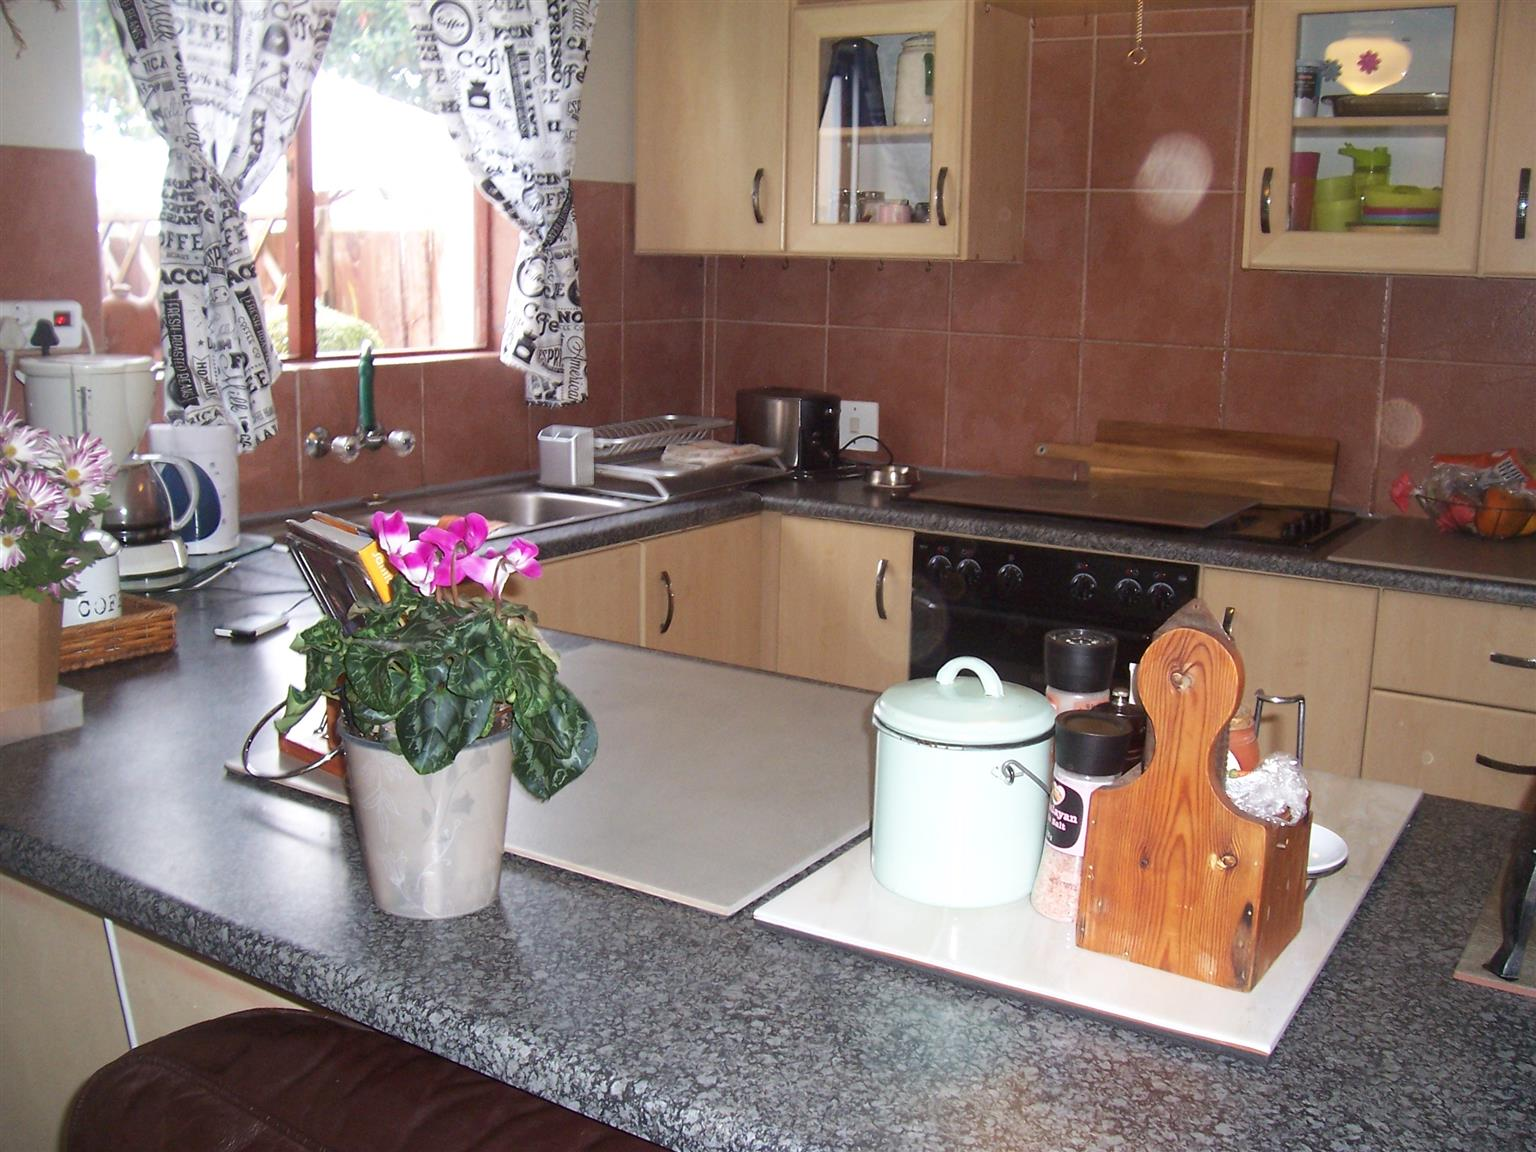 3 BEDROOM HOME FOR SALE IN THE VINES, HERITAGE PARK, SOMERSET WEST.